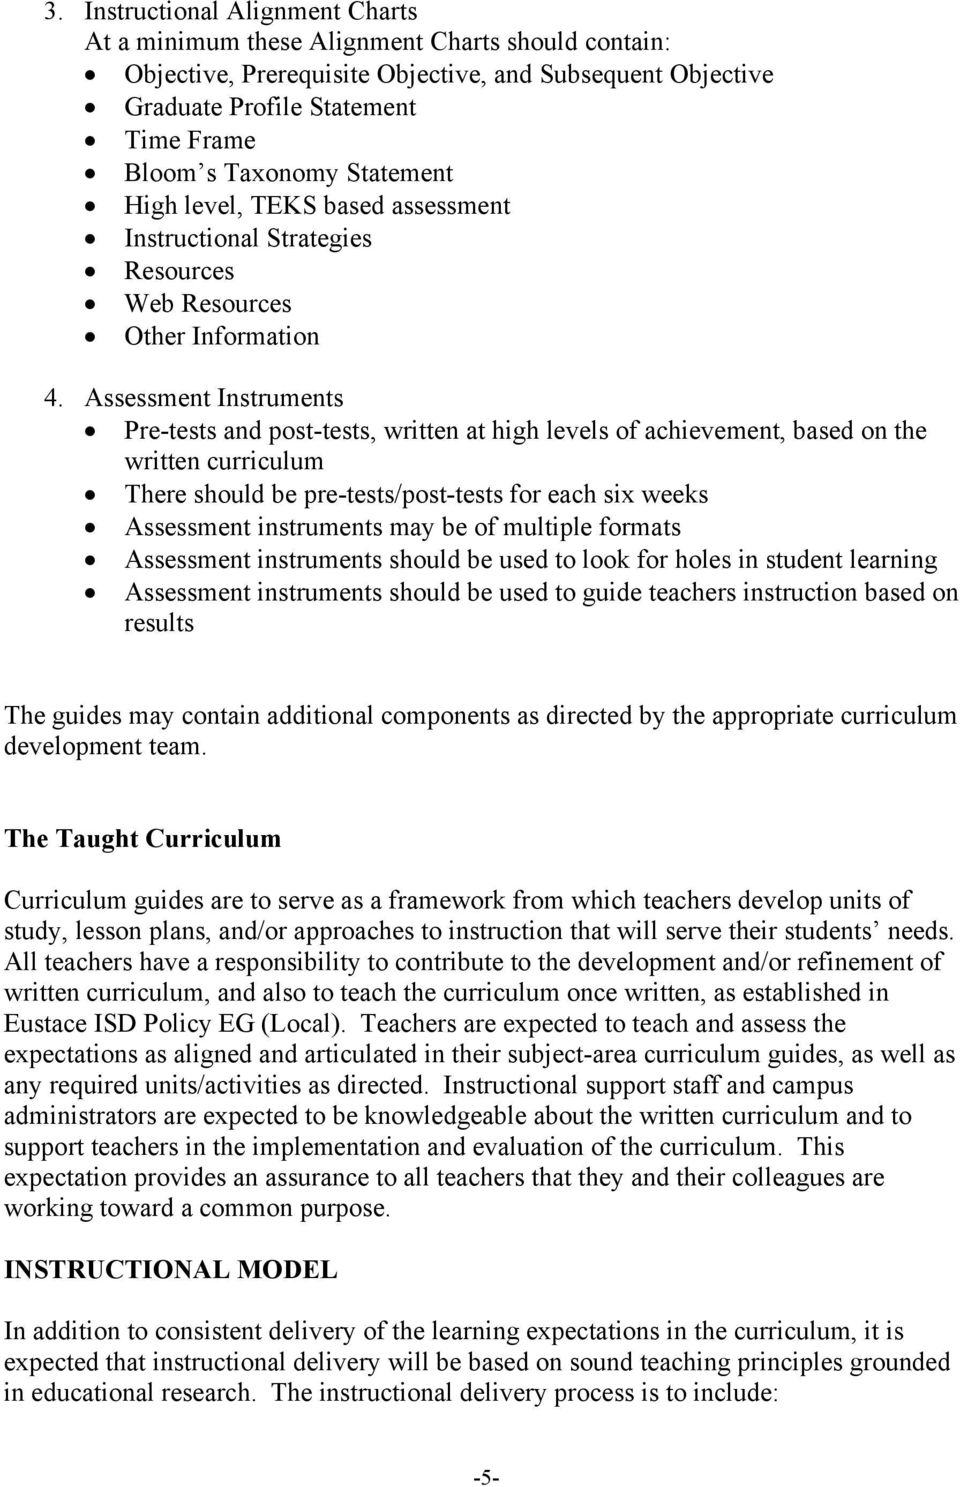 Assessment Instruments Pre-tests and post-tests, written at high levels of achievement, based on the written curriculum There should be pre-tests/post-tests for each six weeks Assessment instruments